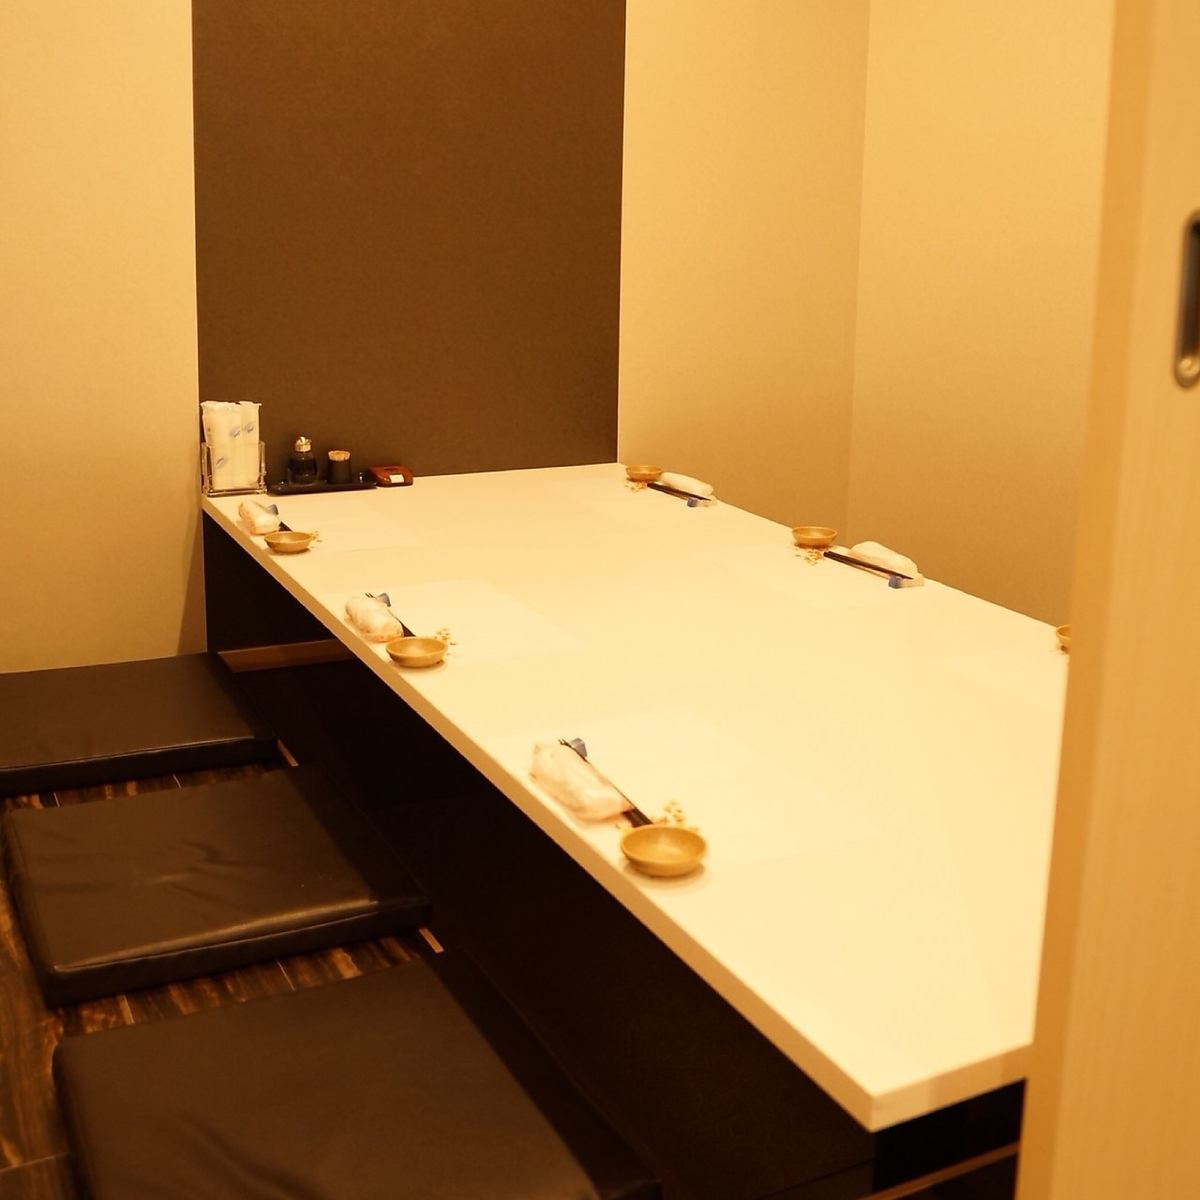 There are many private rooms to relax comfortably! We can eat calmly.